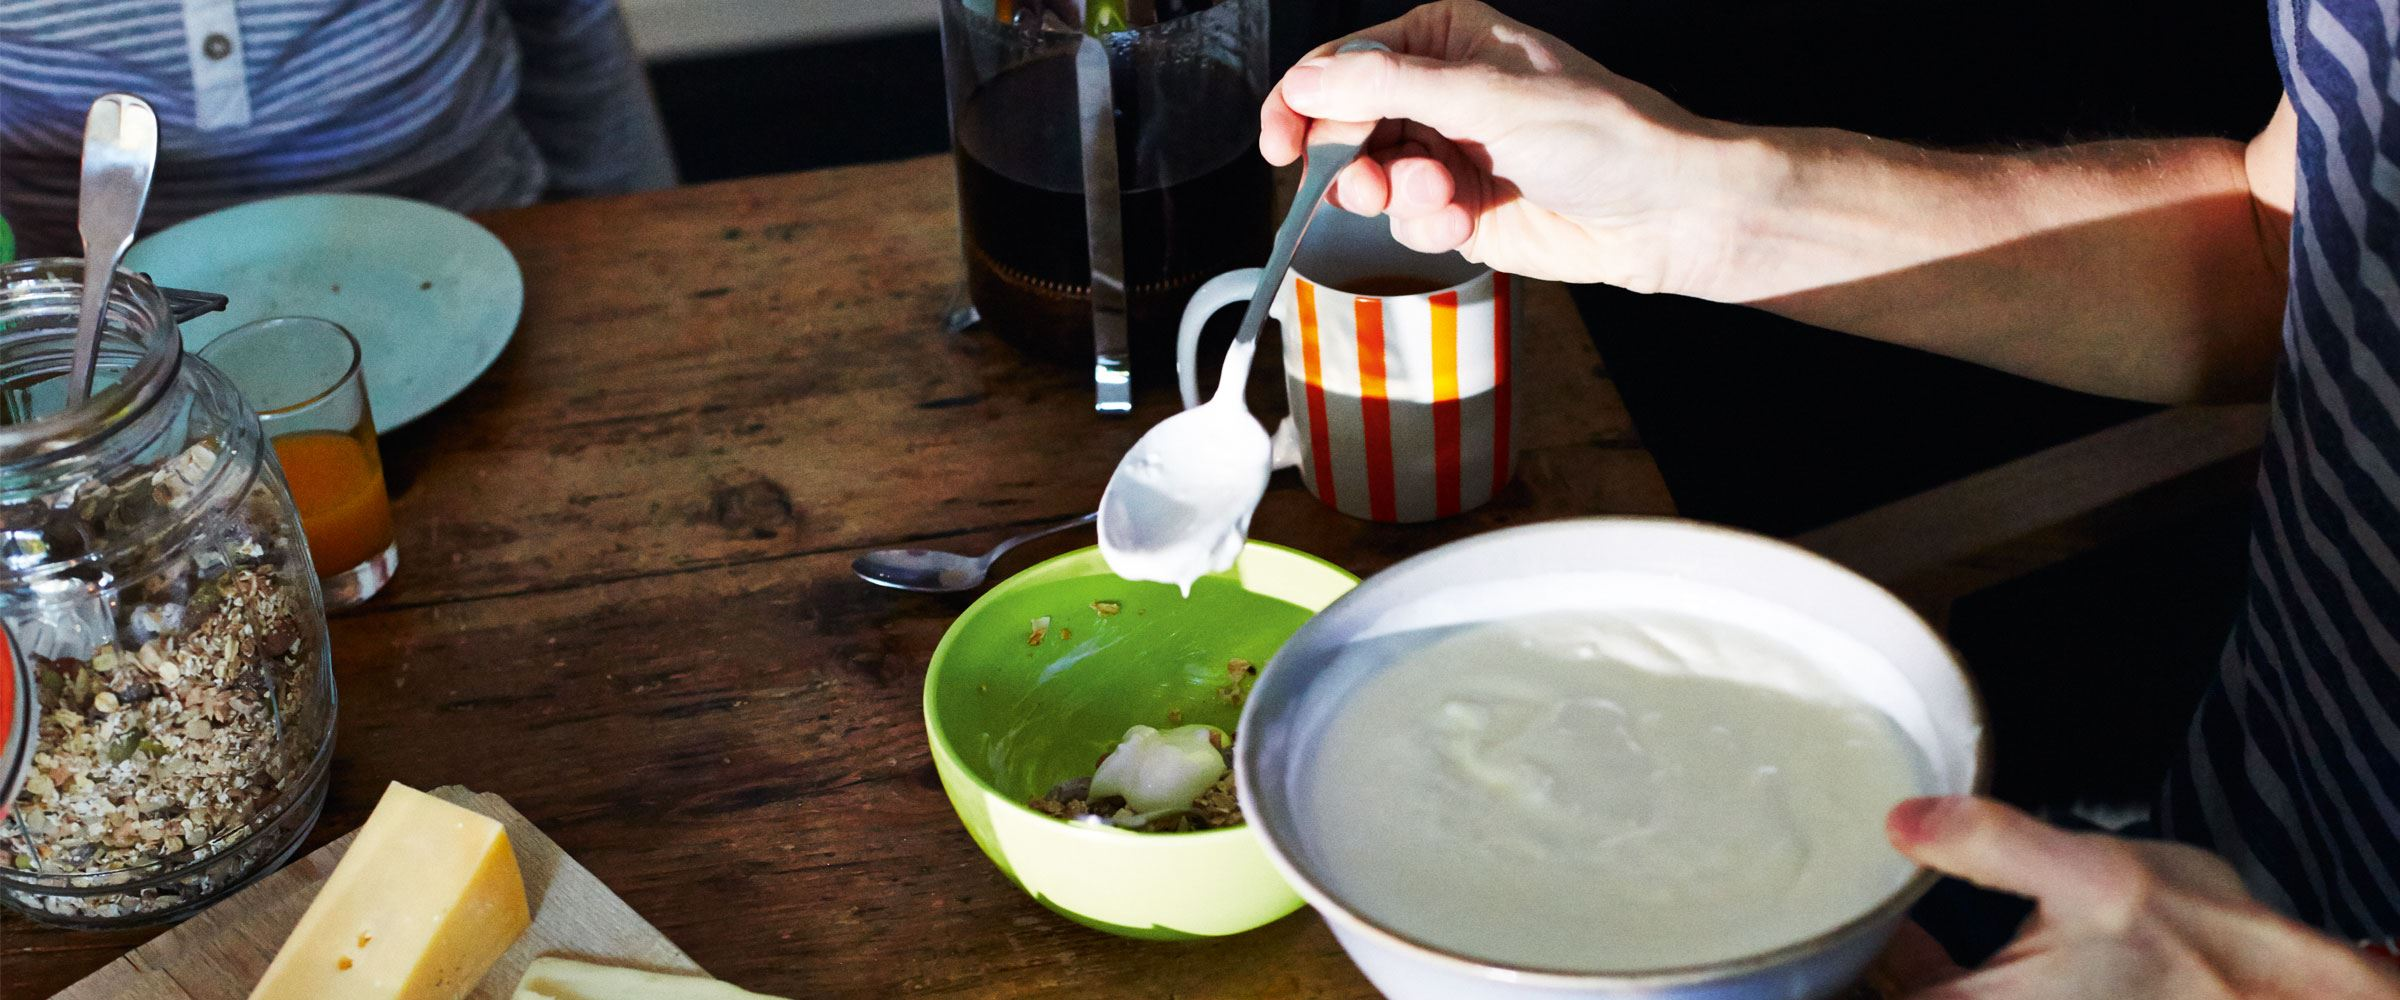 A person mixing yoghurt with grains in a bowl